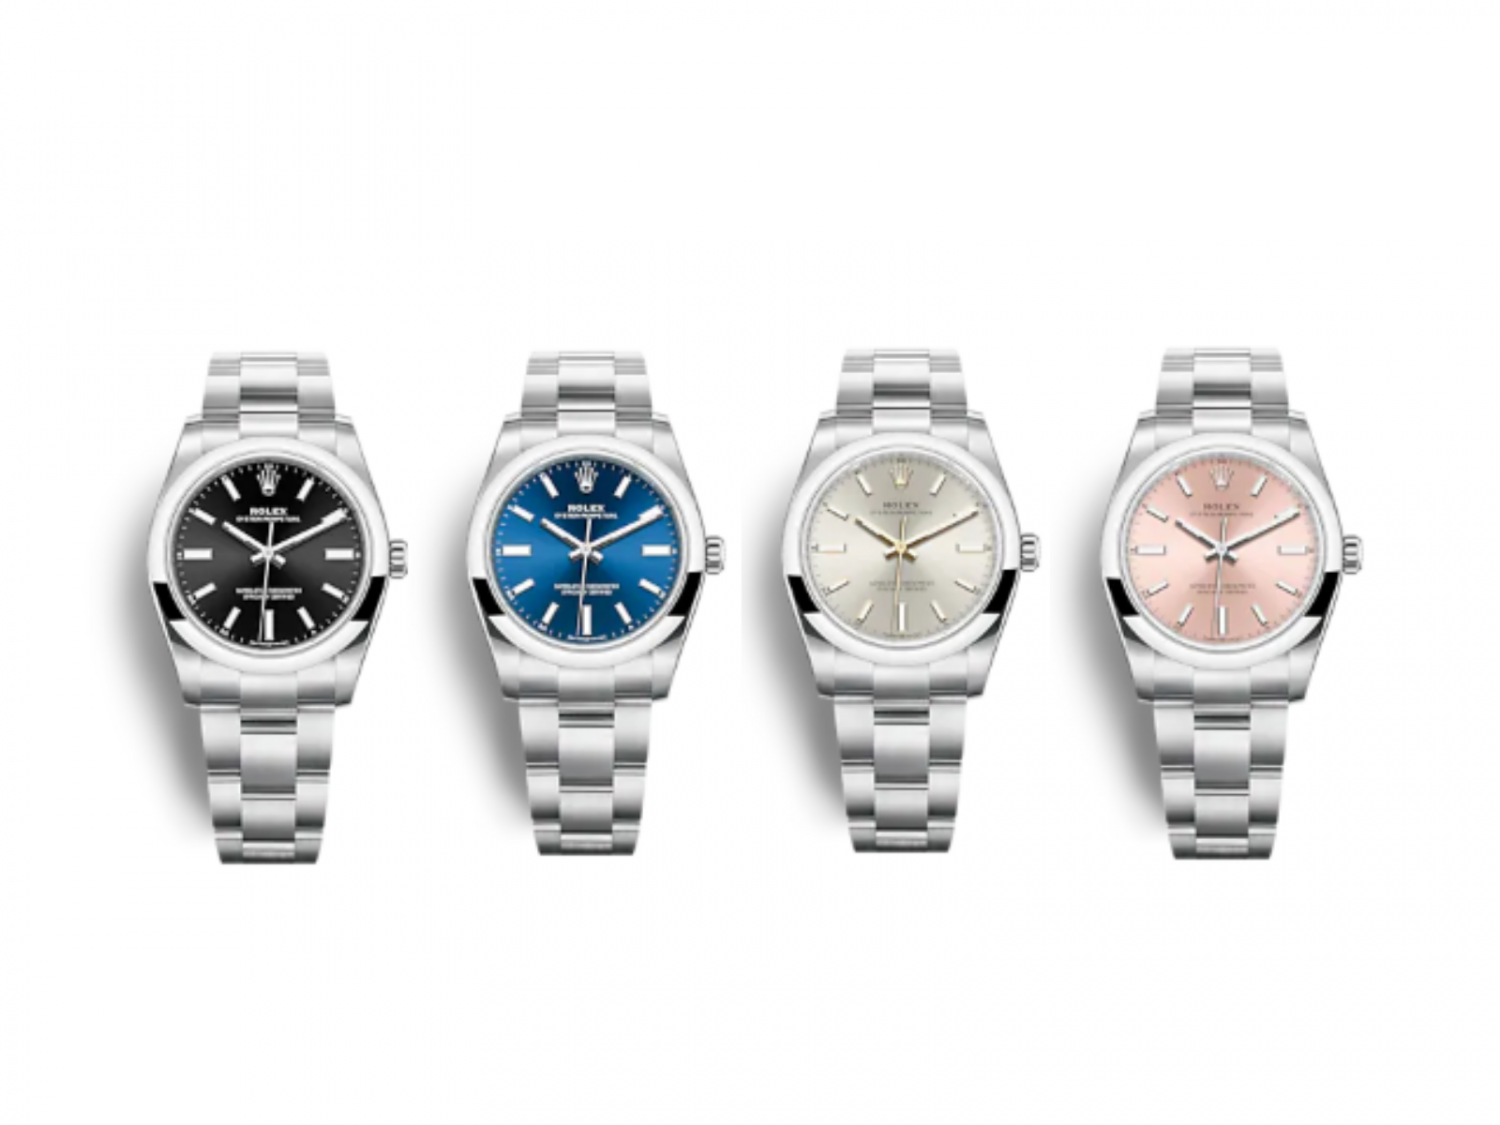 Oyster perpetual 34 124200